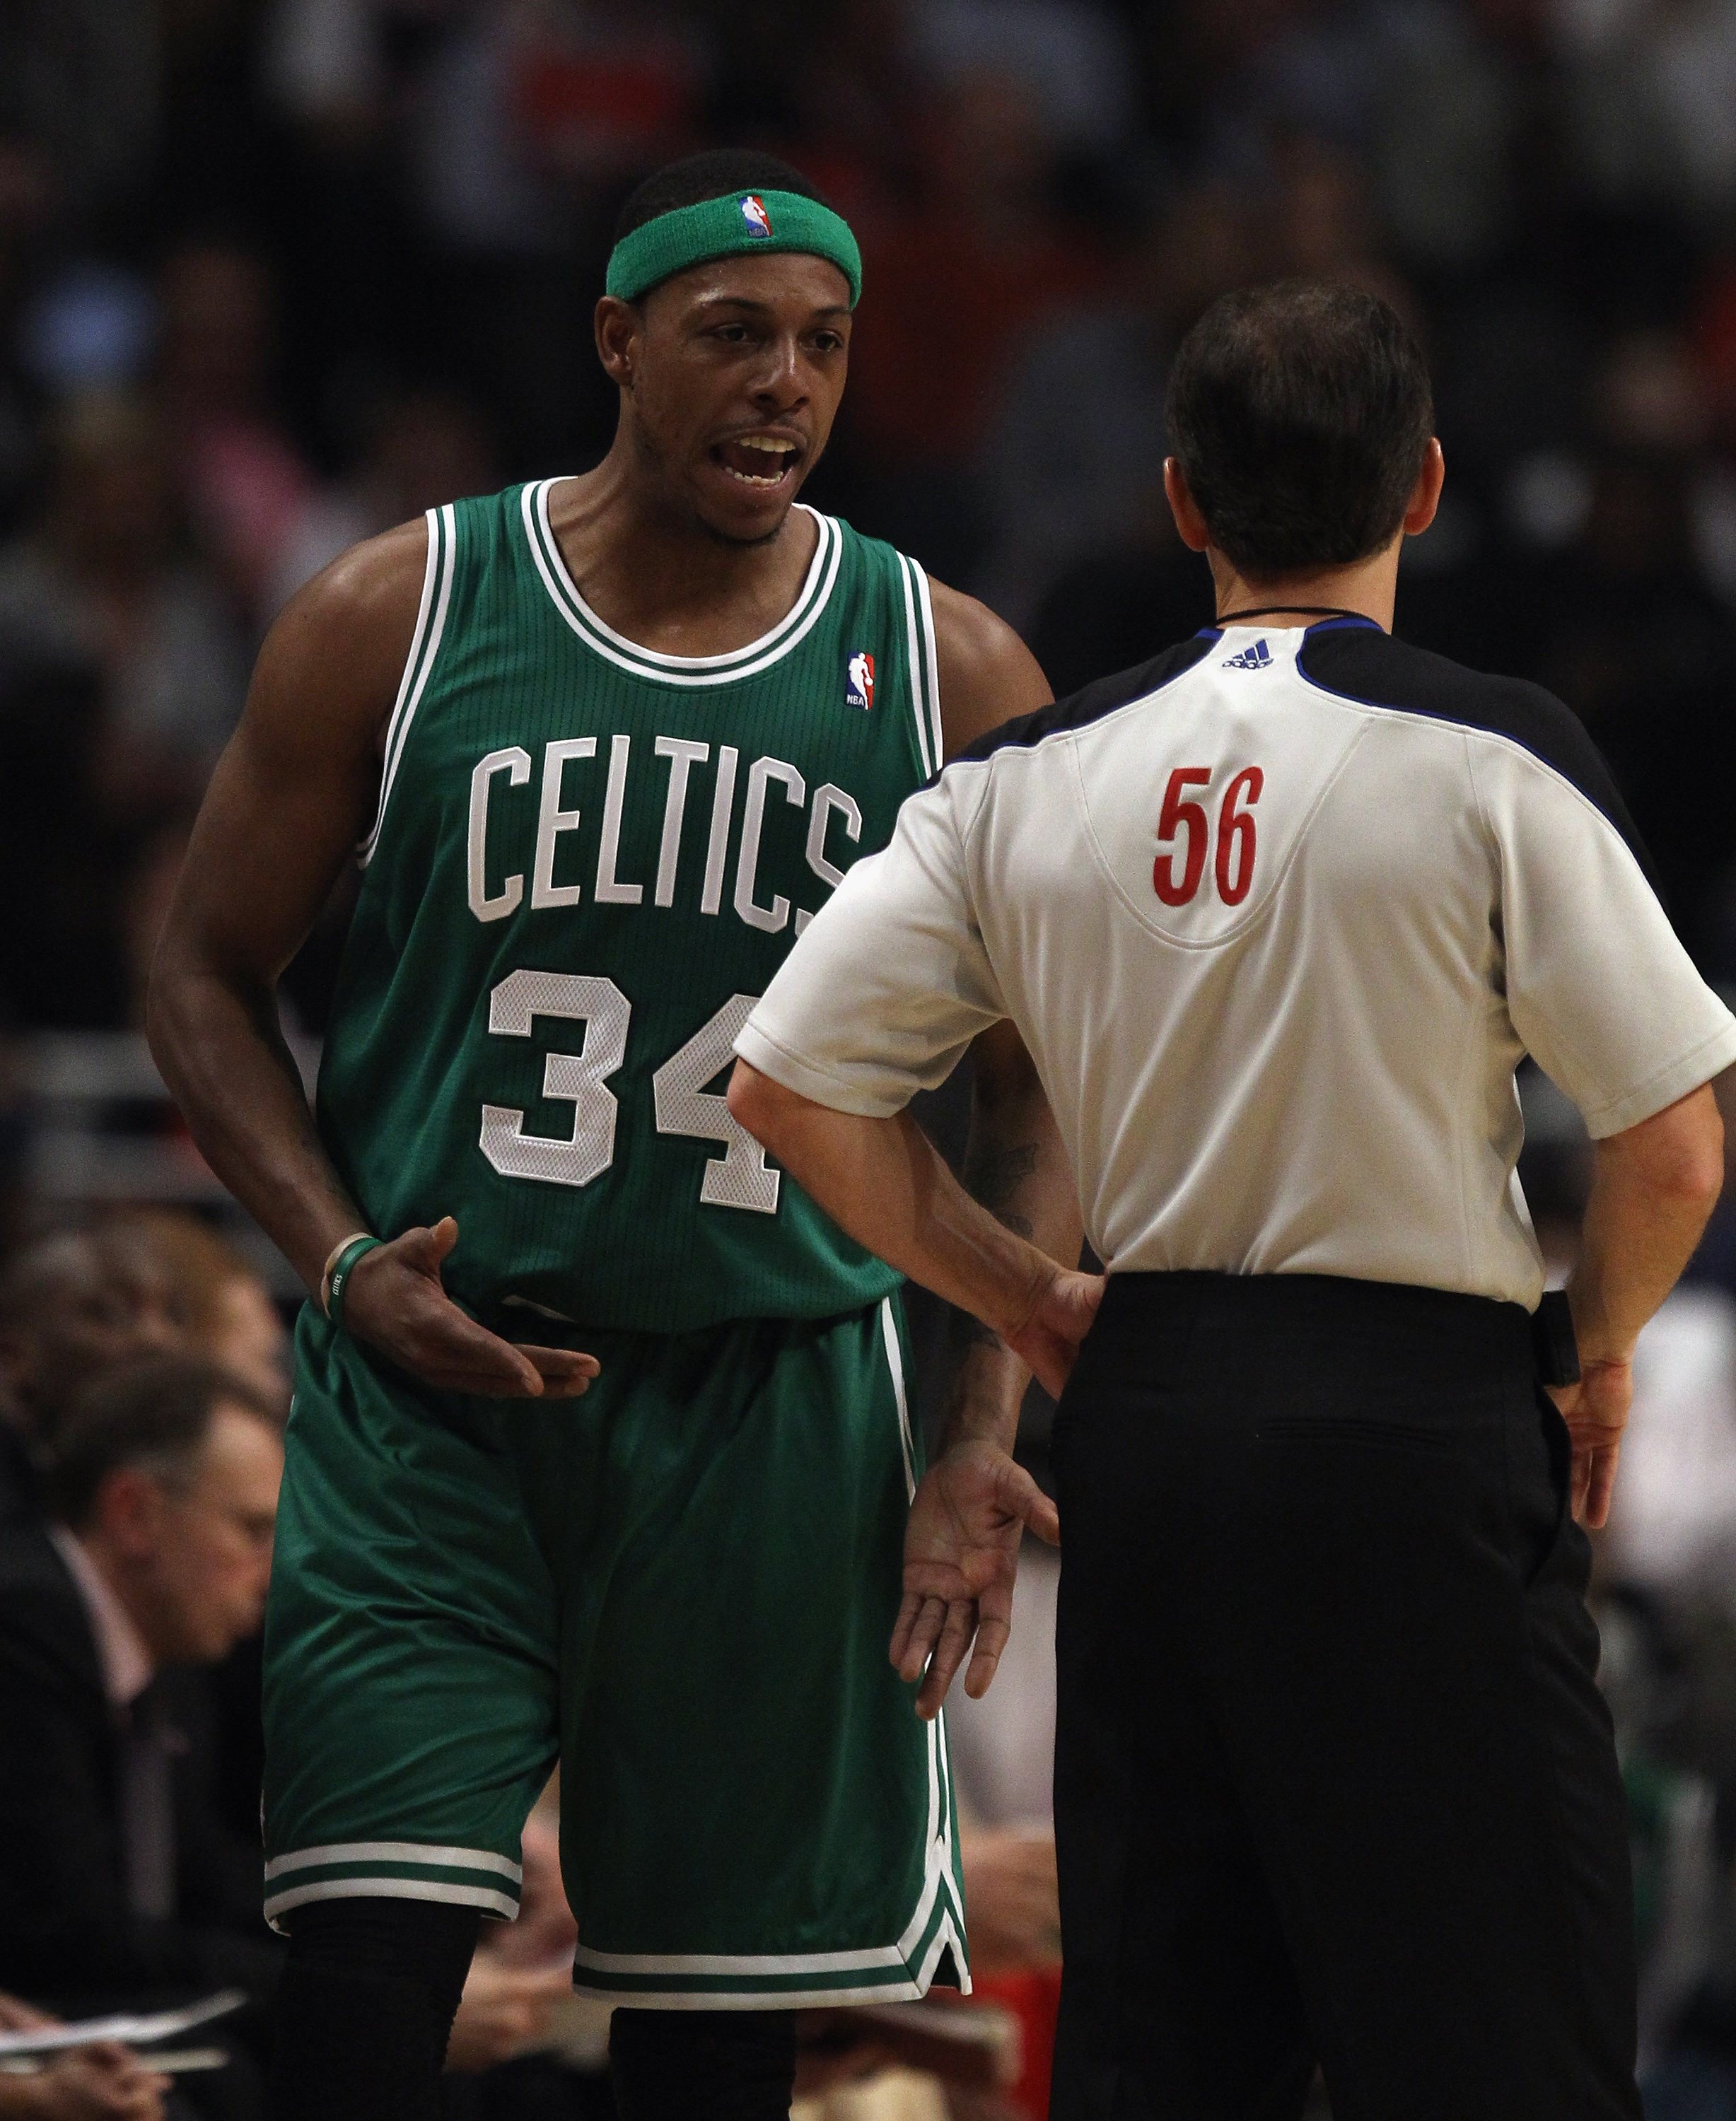 CHICAGO, IL - APRIL 07: Paul Pierce #34 of the Boston Celtics earns a technical foul for yelling at referee Mark Ayotte #56 during a game against the Chicago Bulls at United Center on April 7, 2011 in Chicago, Illinois. NOTE TO USER: User expressly acknow